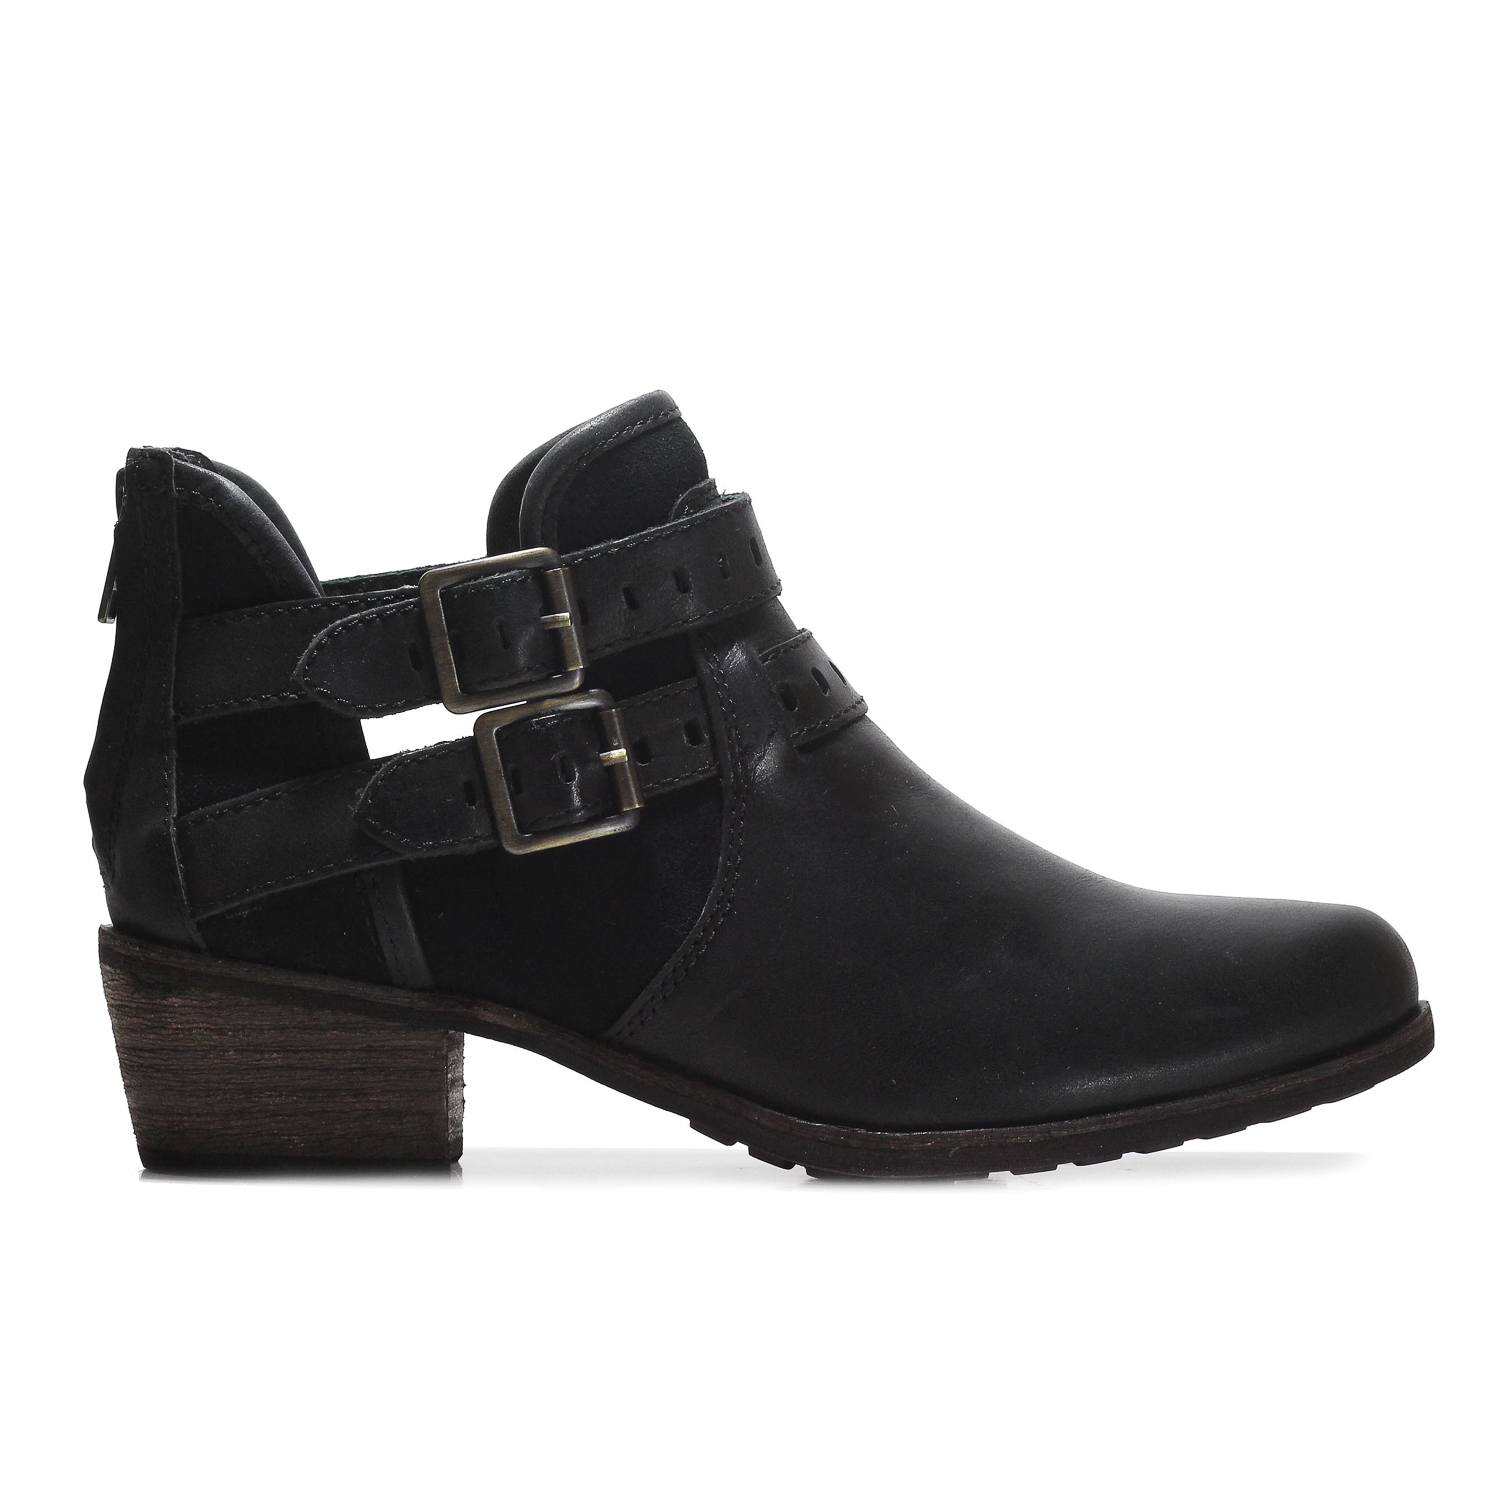 ab3cbc54cfa Details about Ugg Australia Patsy Women Round Toe Ankle Boot shoes 1010203W  Black